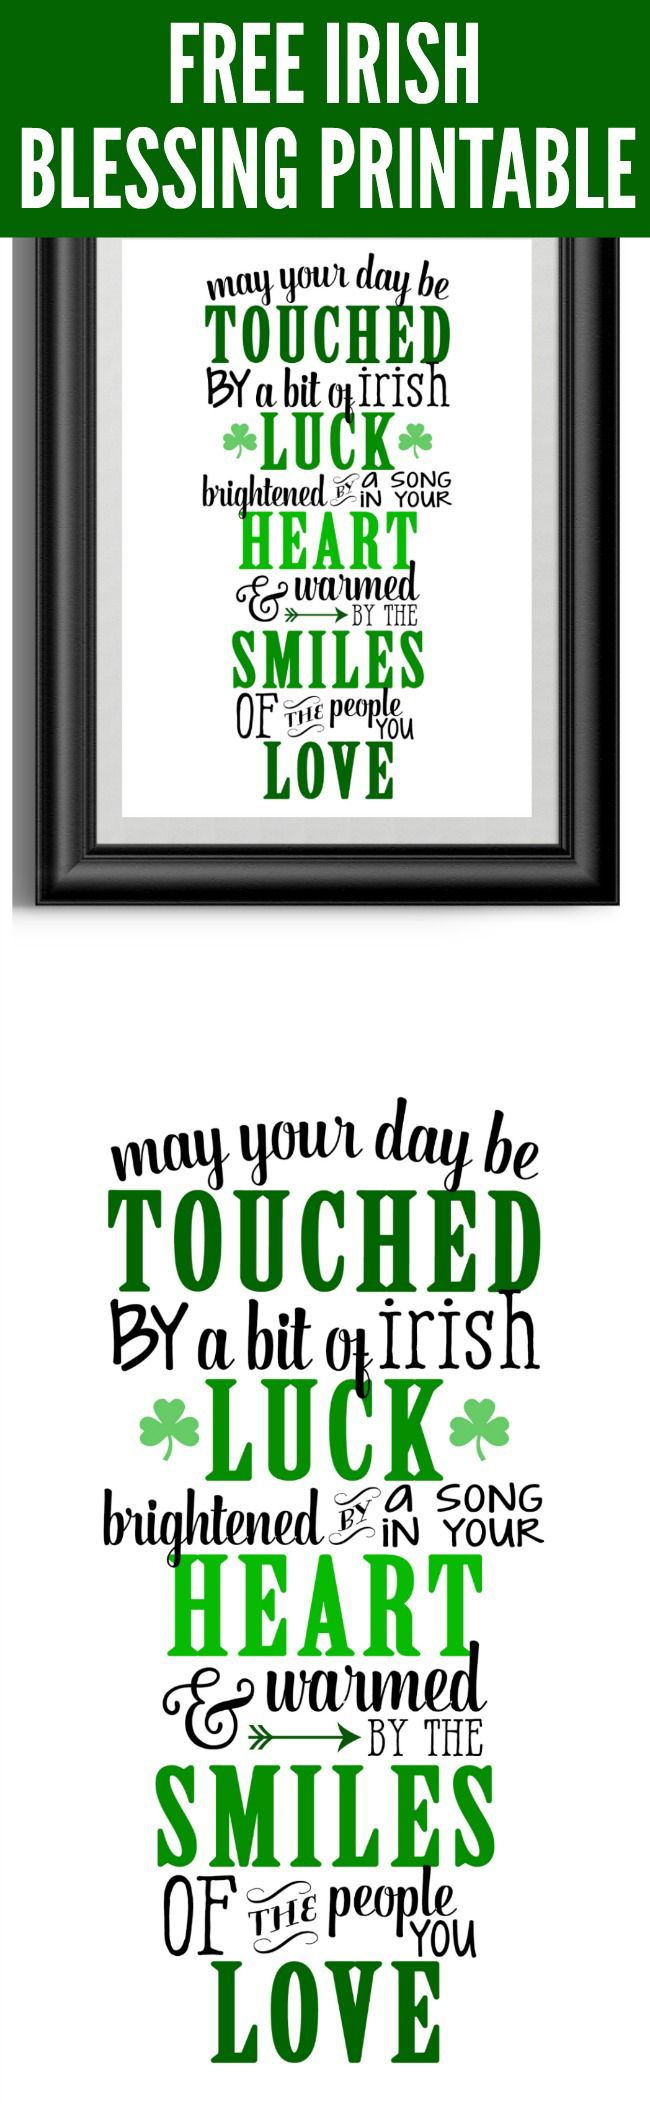 Free Irish Blessing Printable Art in 2018 | The GROUP BOARD on ...